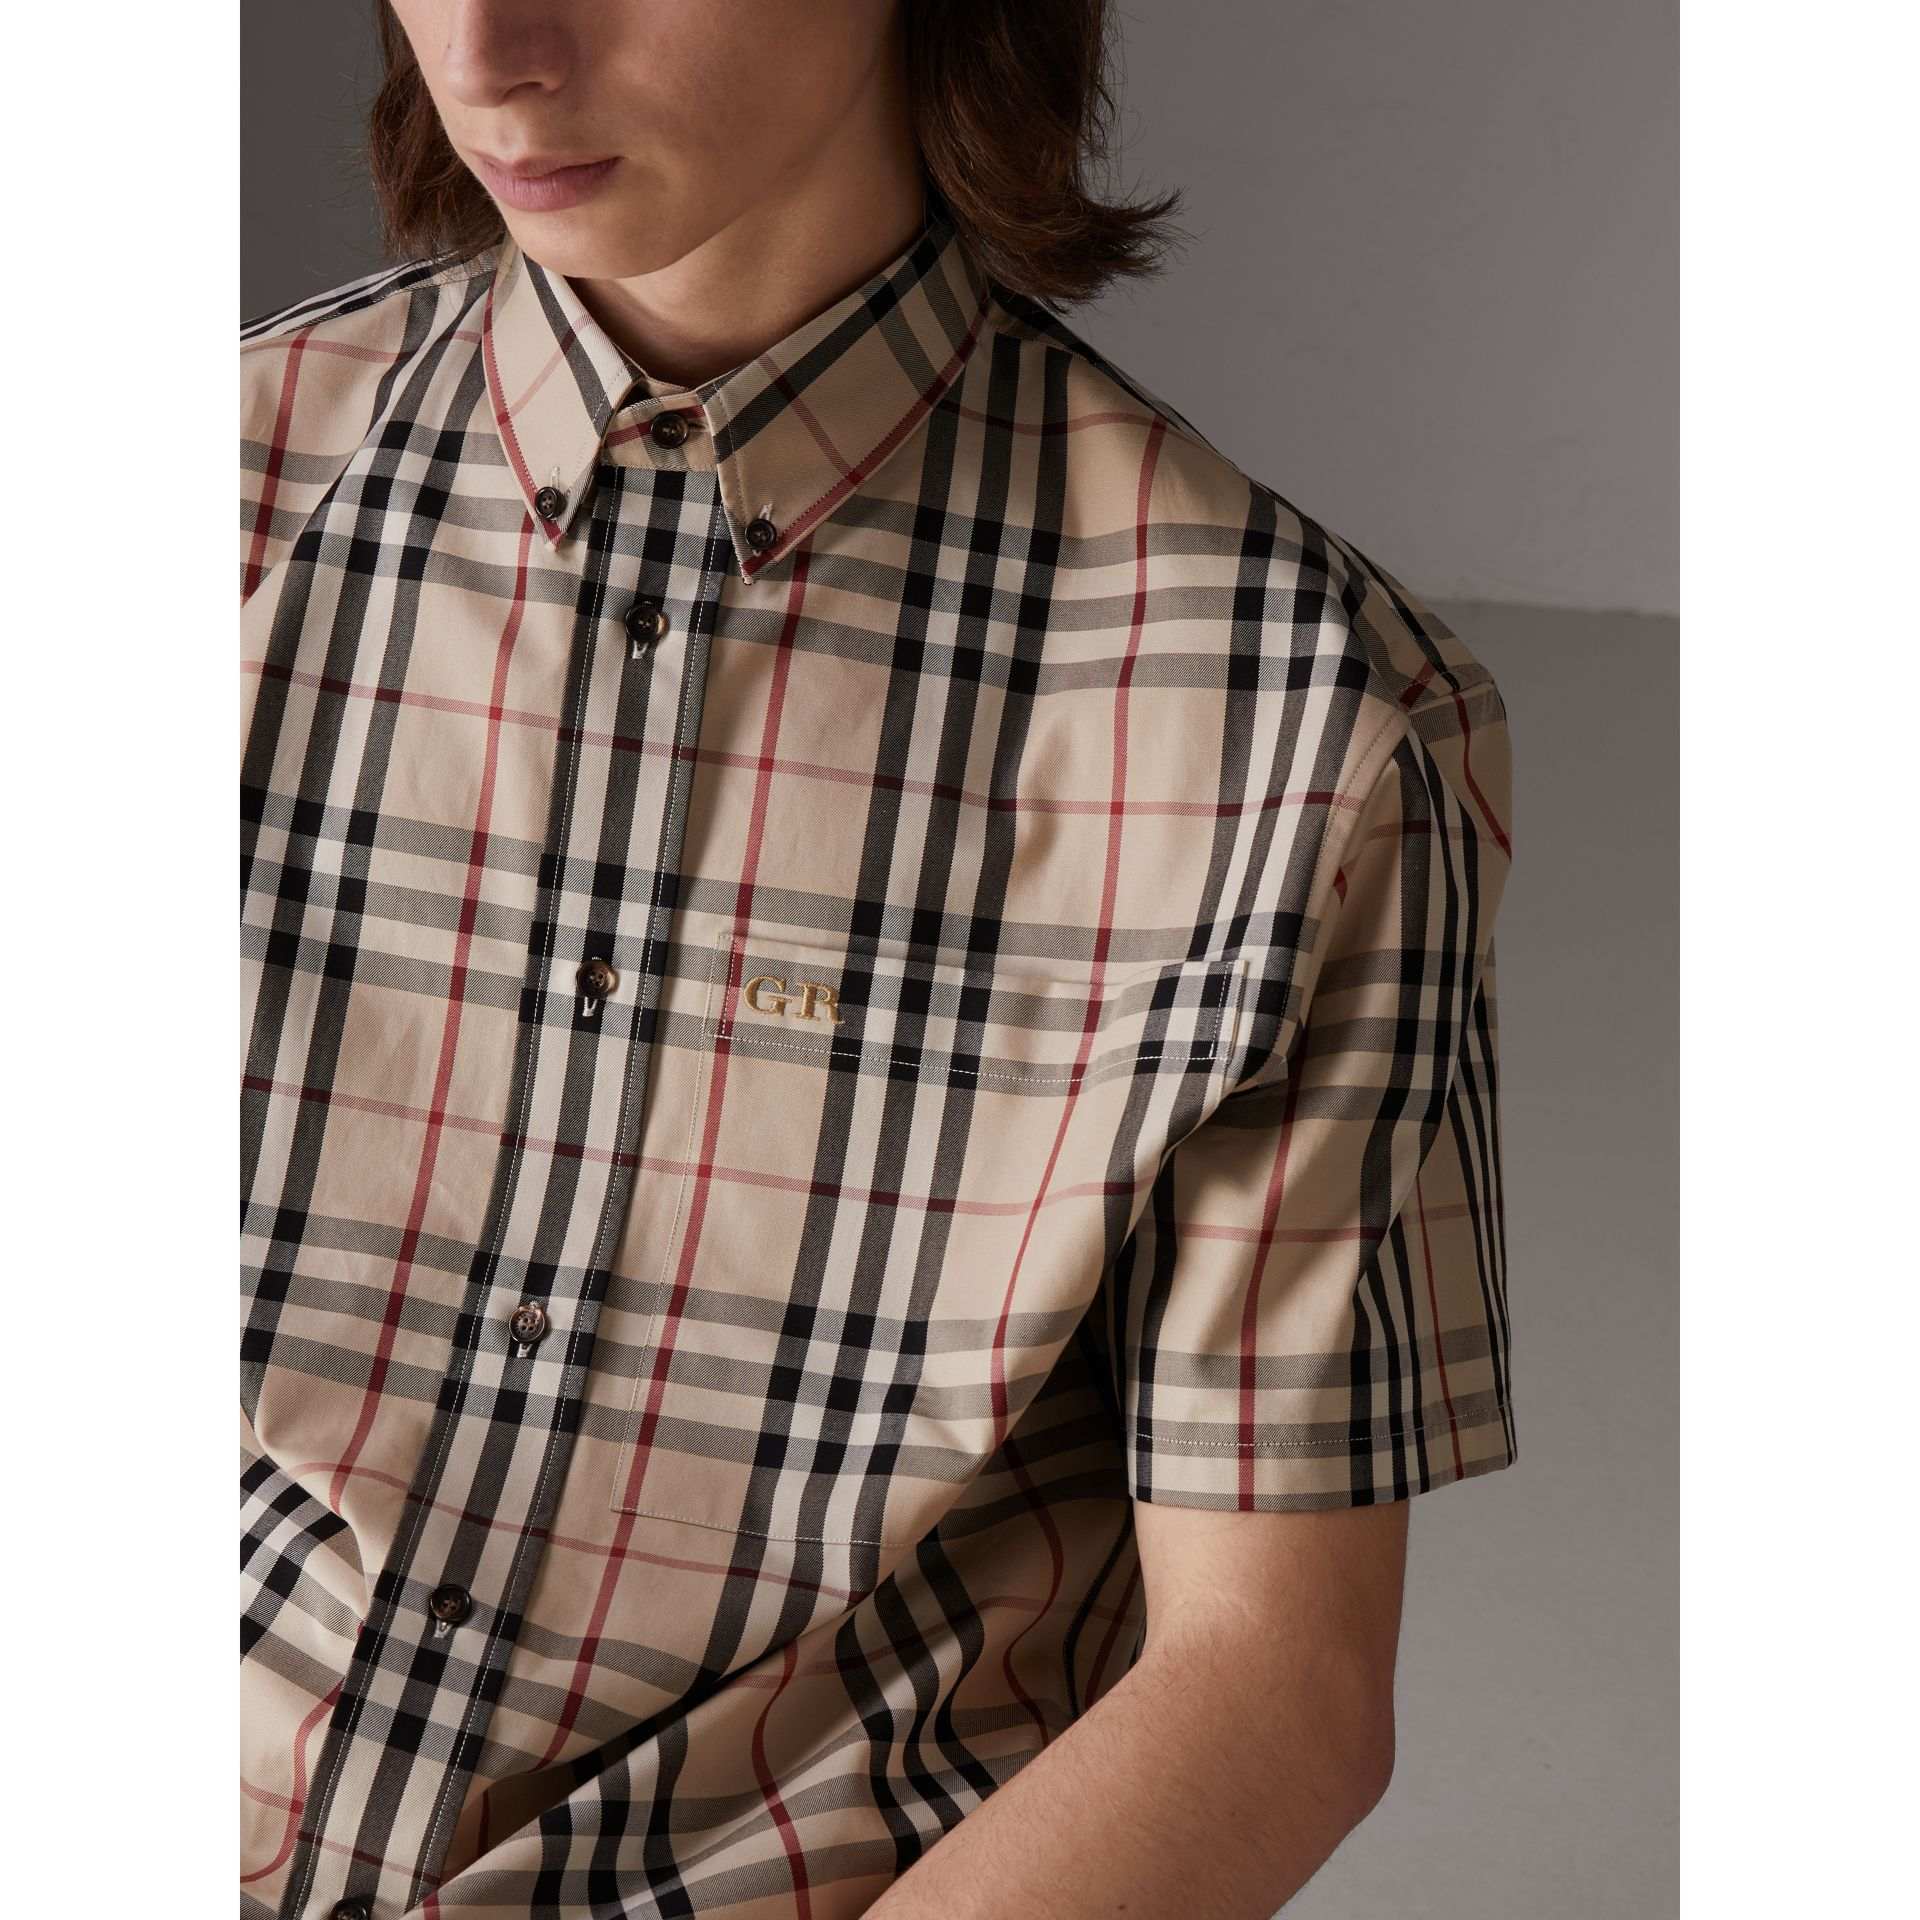 Gosha x Burberry Short-sleeve Check Shirt in Honey - Men | Burberry - gallery image 1